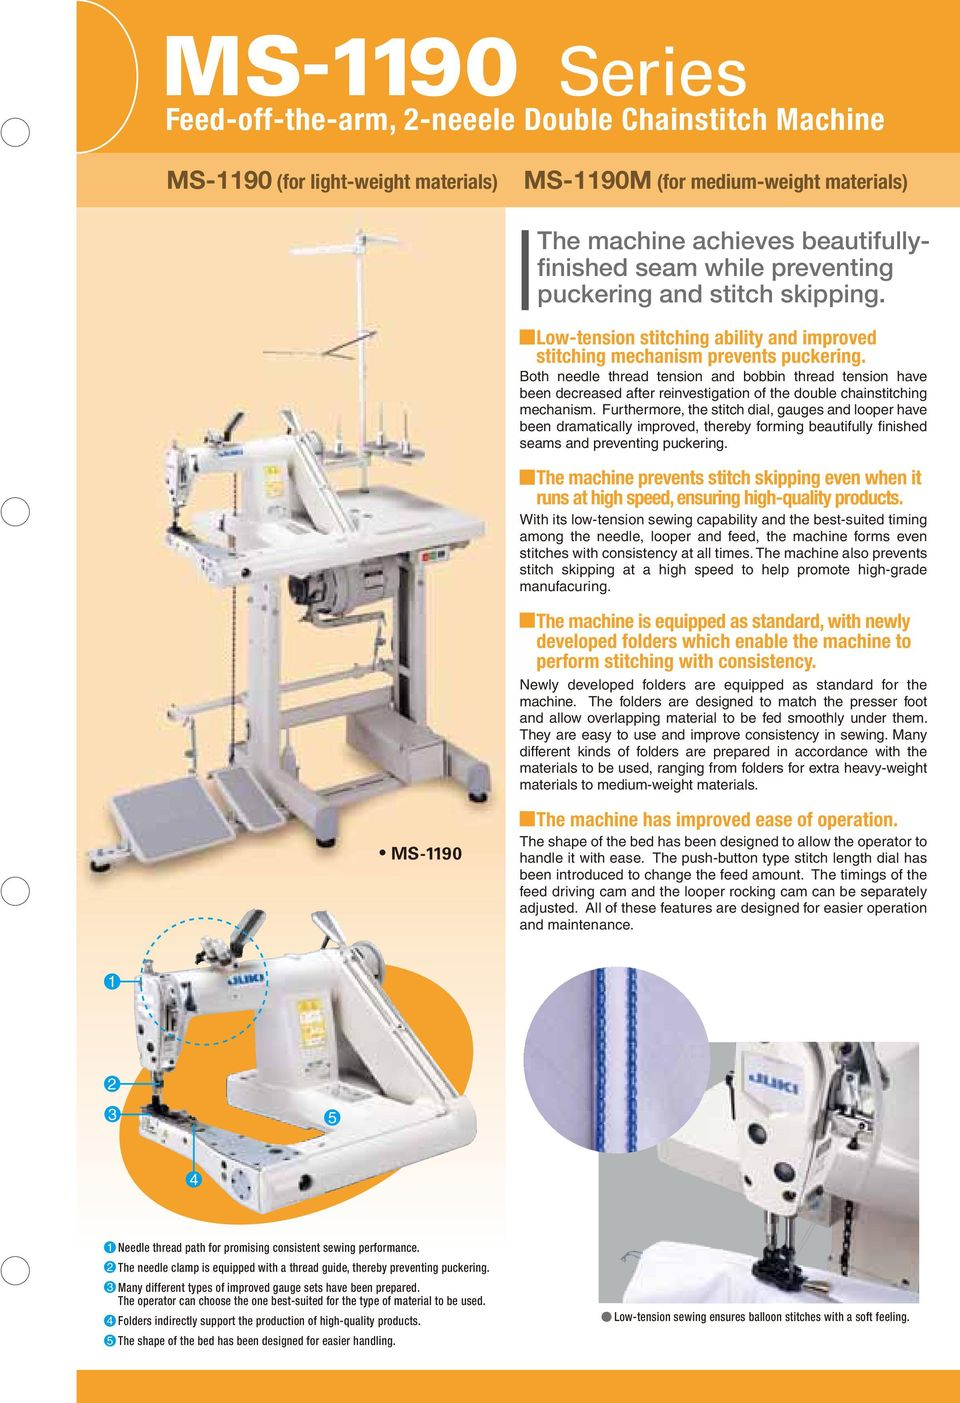 Both needle thread tension and bobbin thread tension have been decreased  after reinvestigation of the double